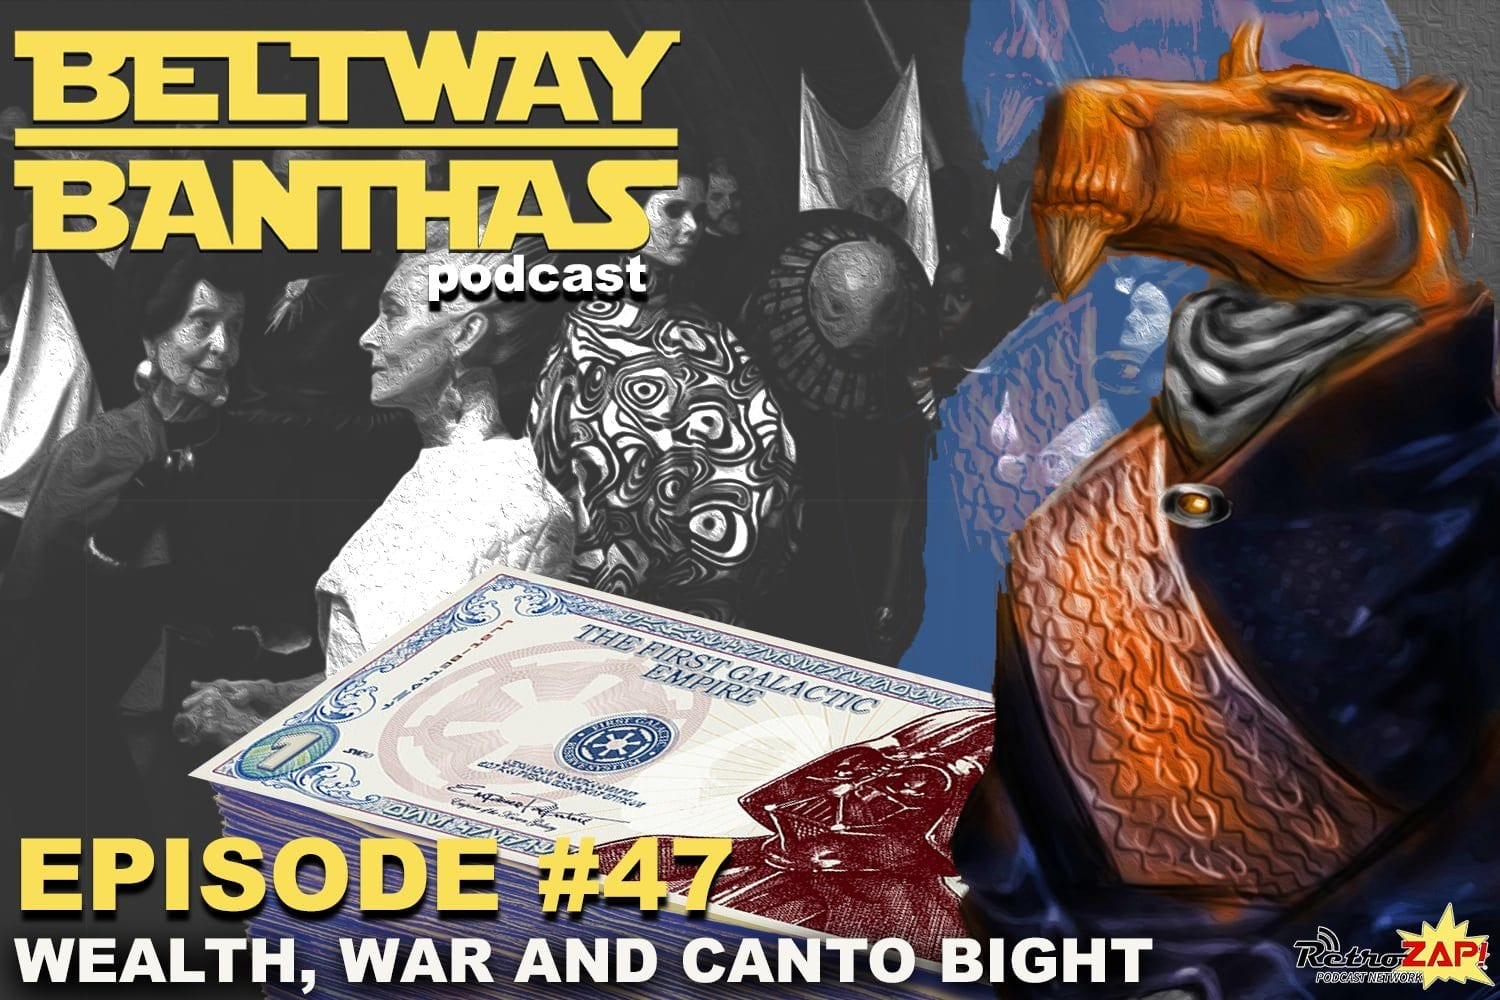 Beltway Banthas #47: Wealth, War and Canto Bight